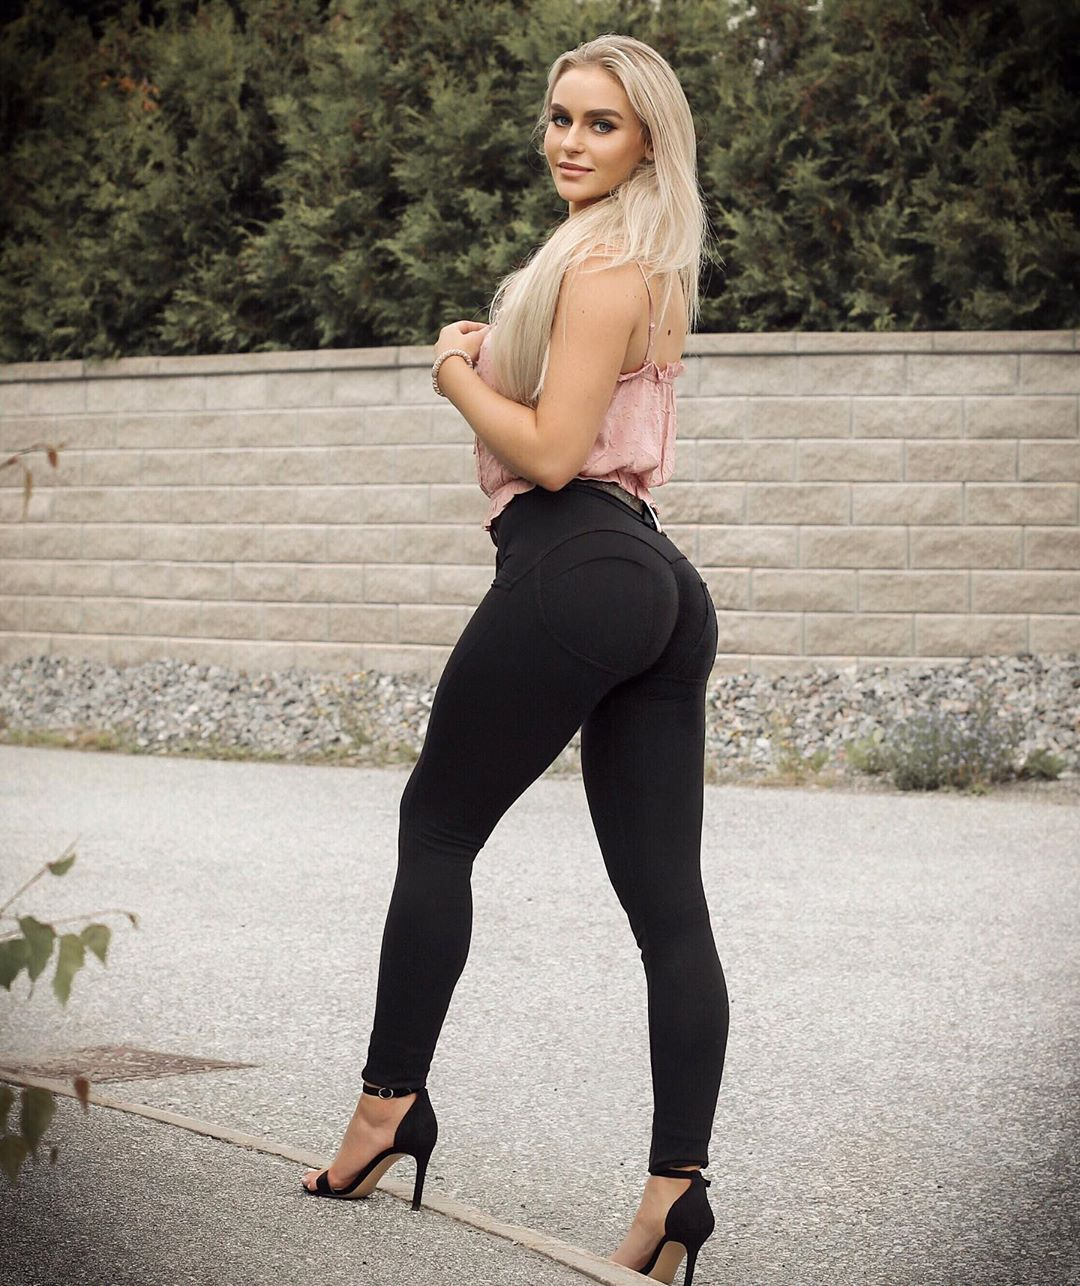 Anna-Nystrom-Wallpapers-Insta-Fit-Bio-4